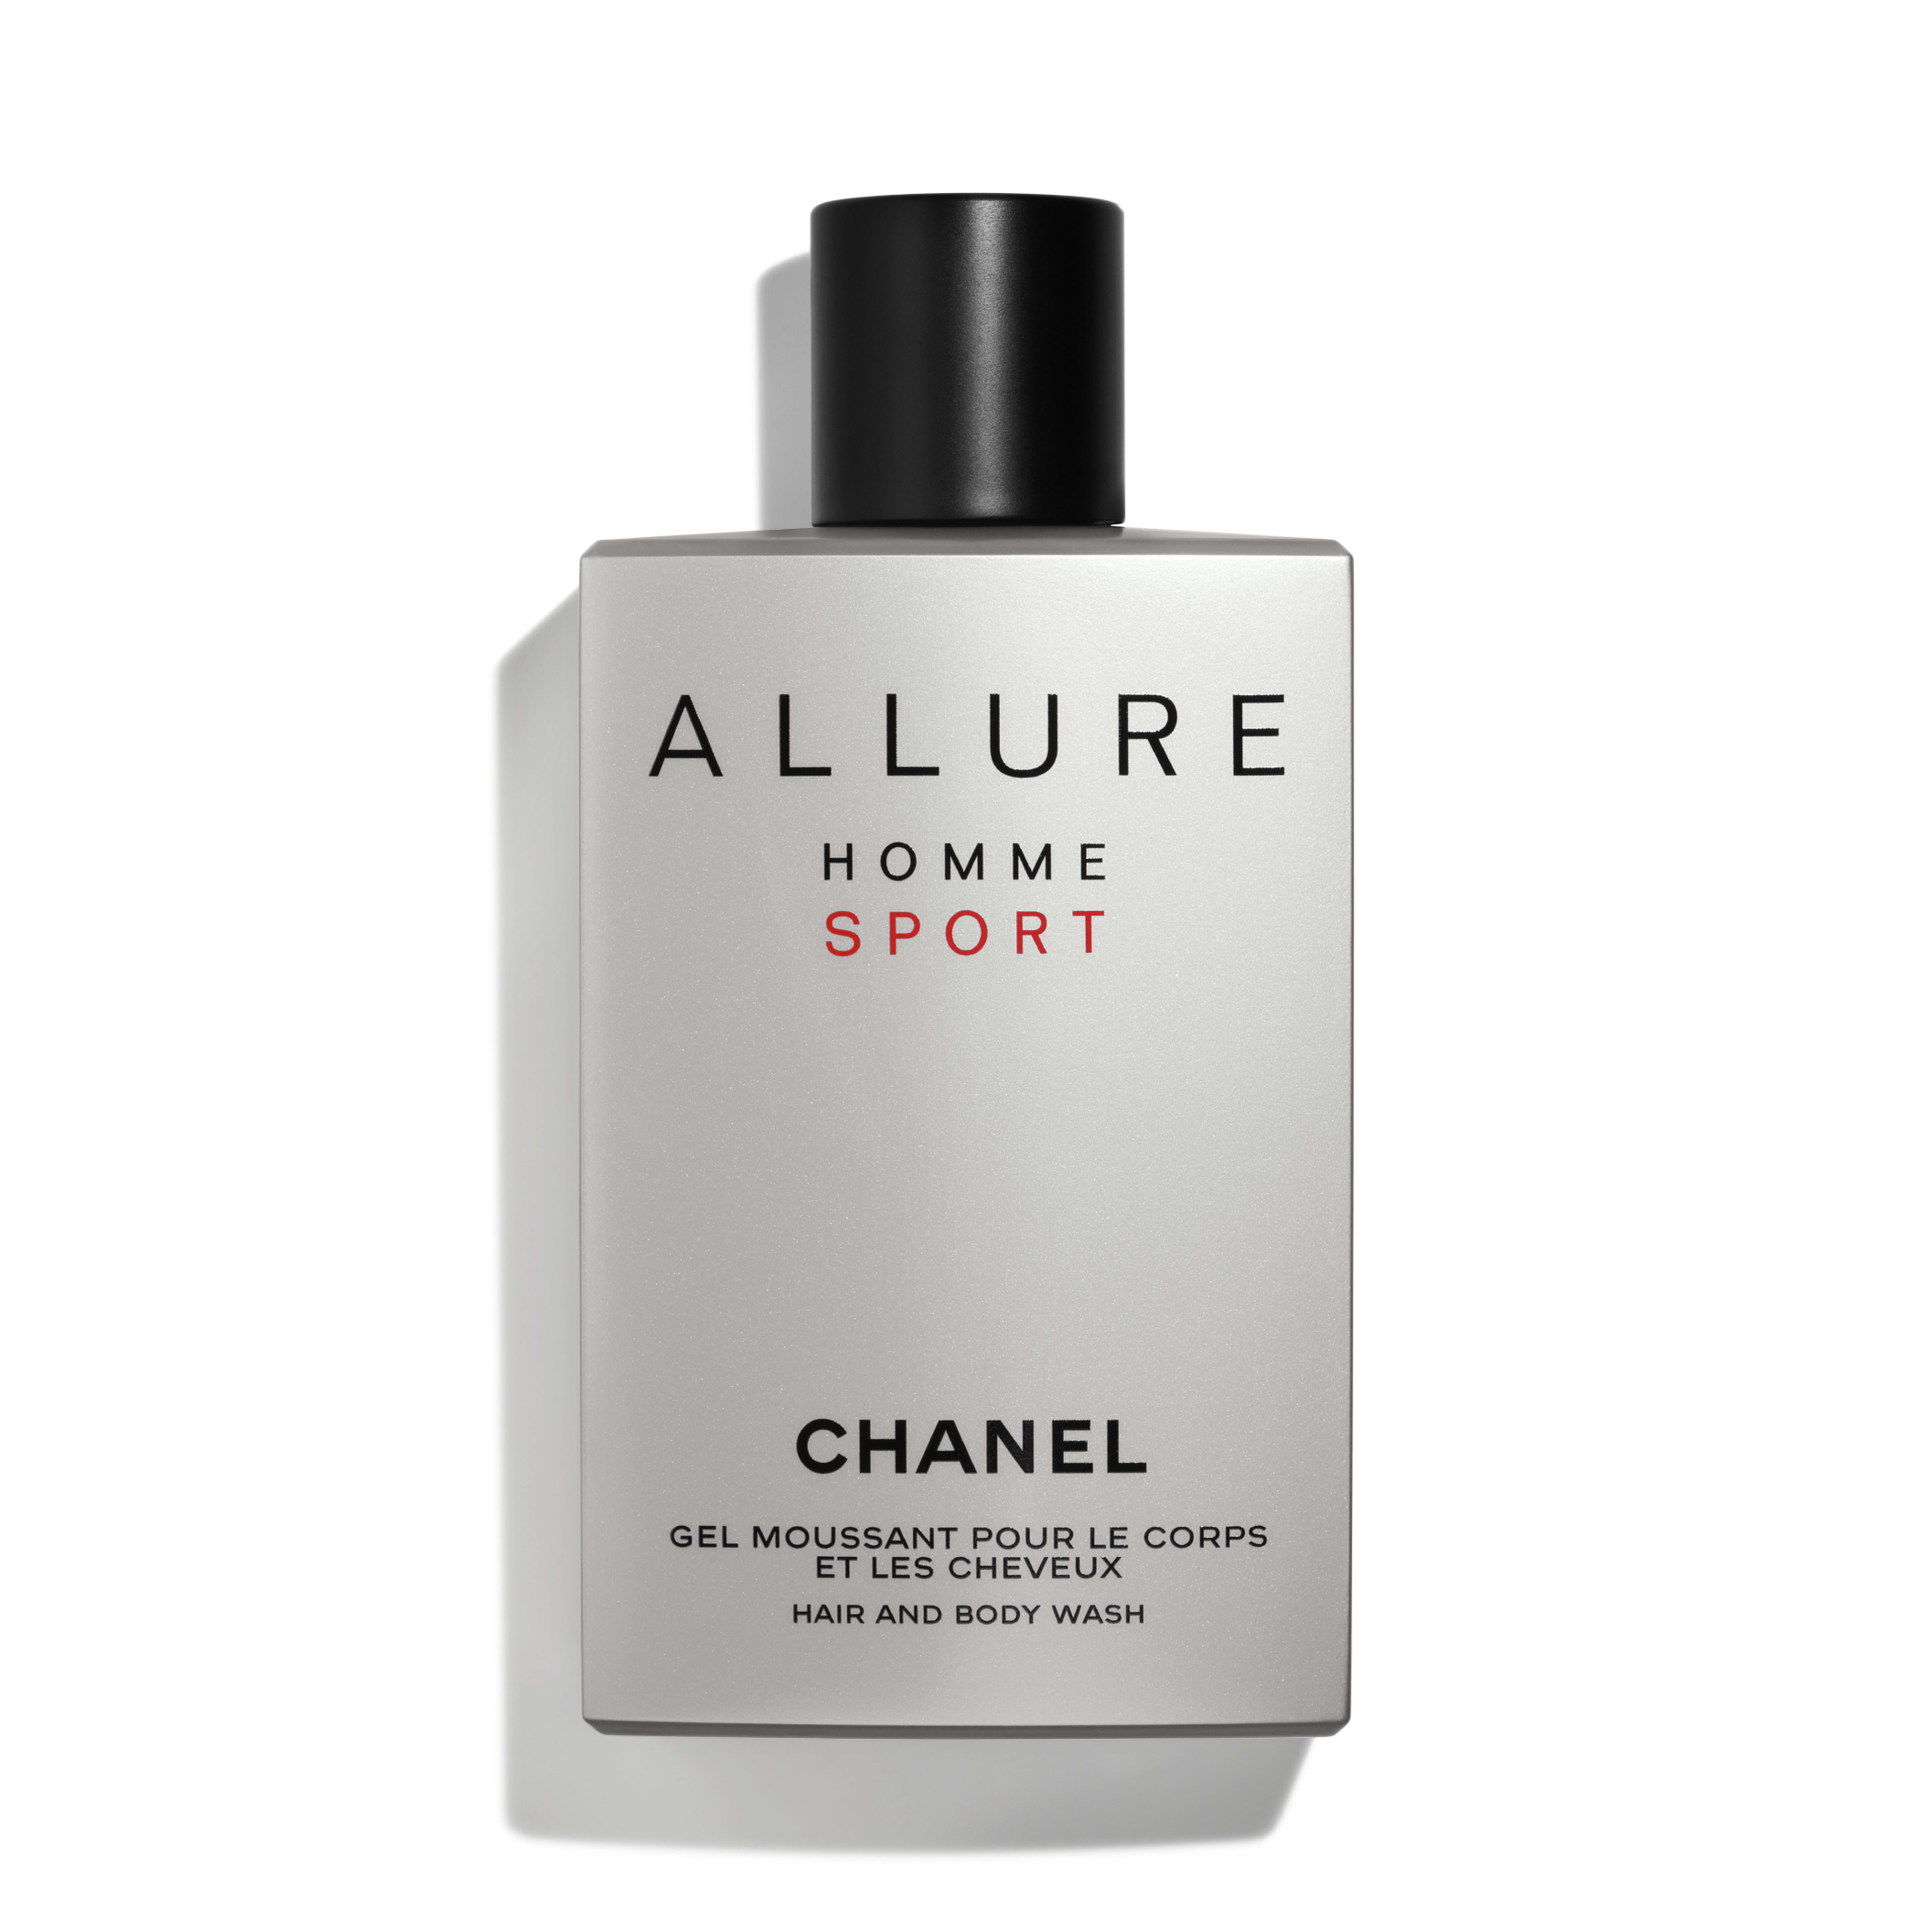 5f883e2b88bcb ALLURE HOMME SPORT Hair And Body Wash